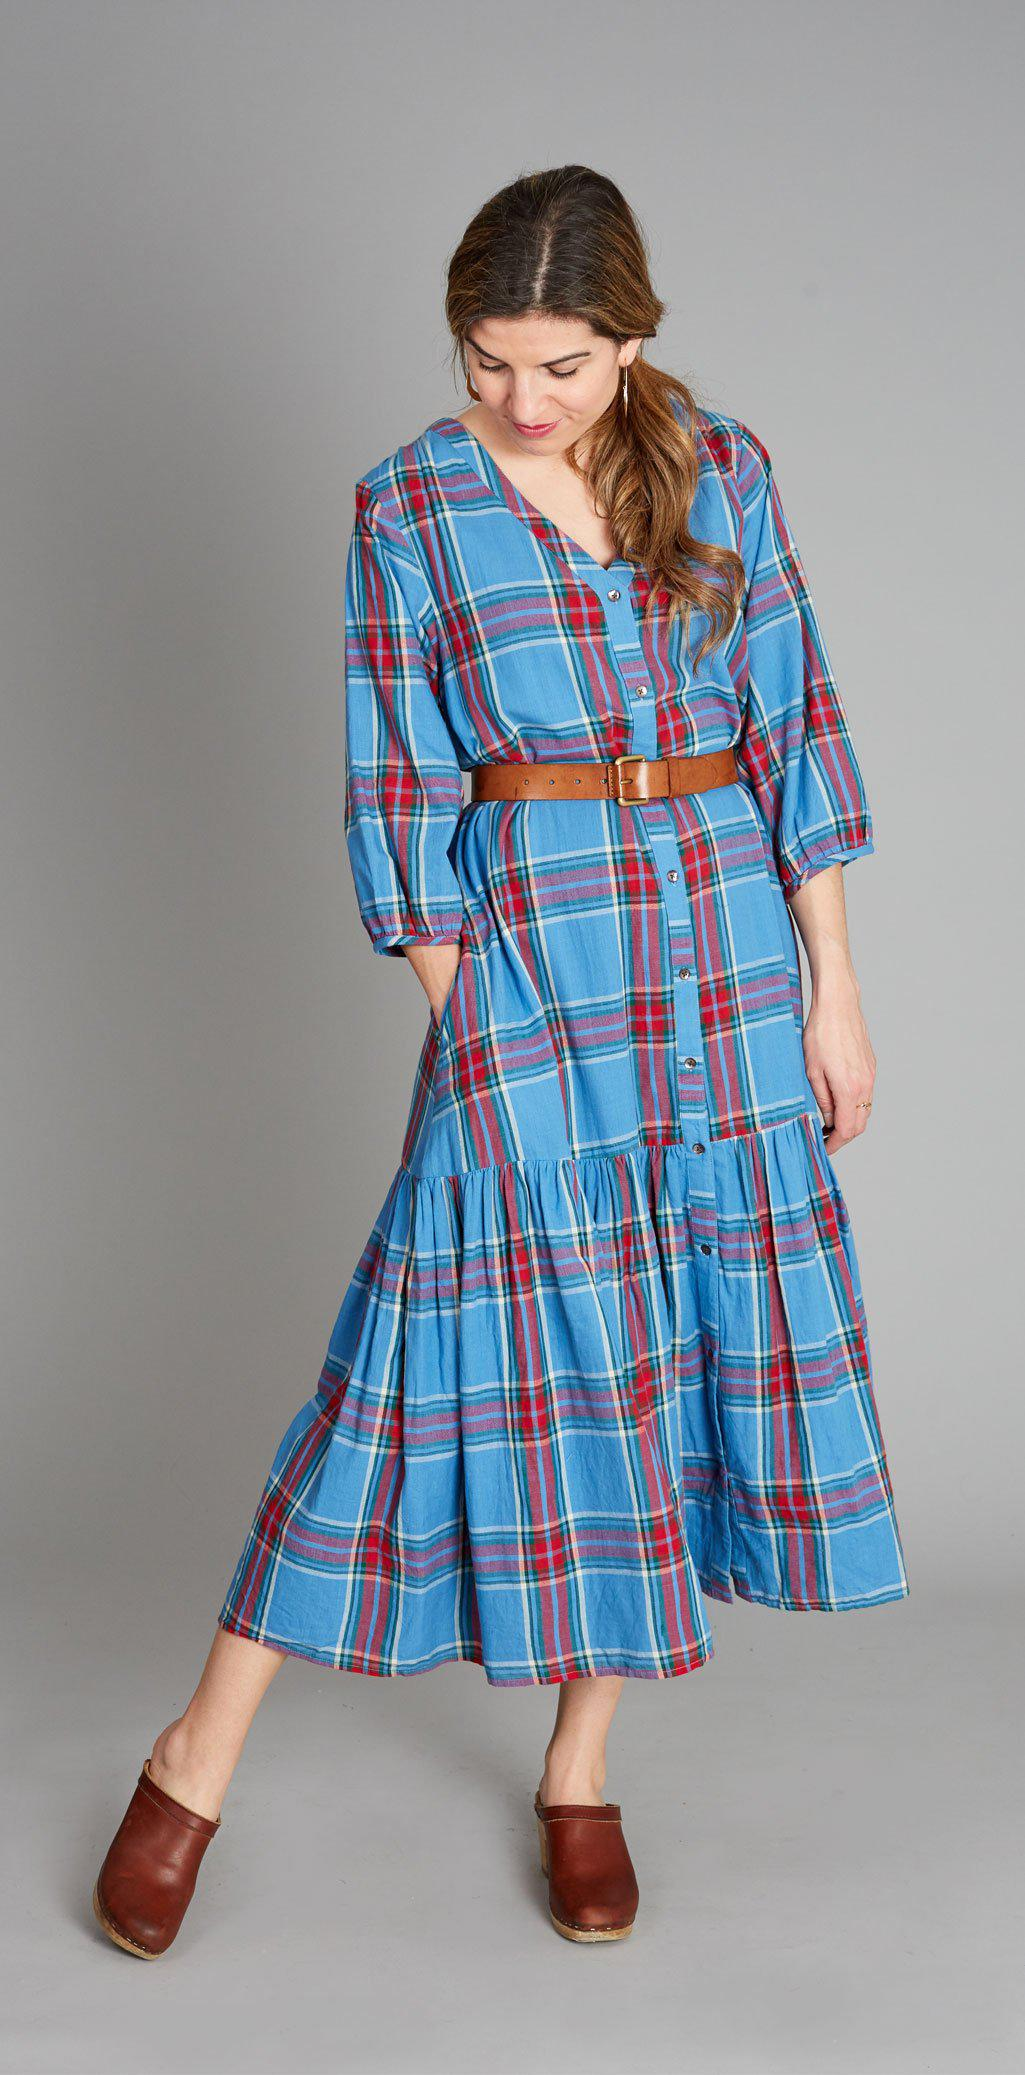 View larger version of Pink Chicken Fione Dress XS riviera tartan - 19fpcw208a